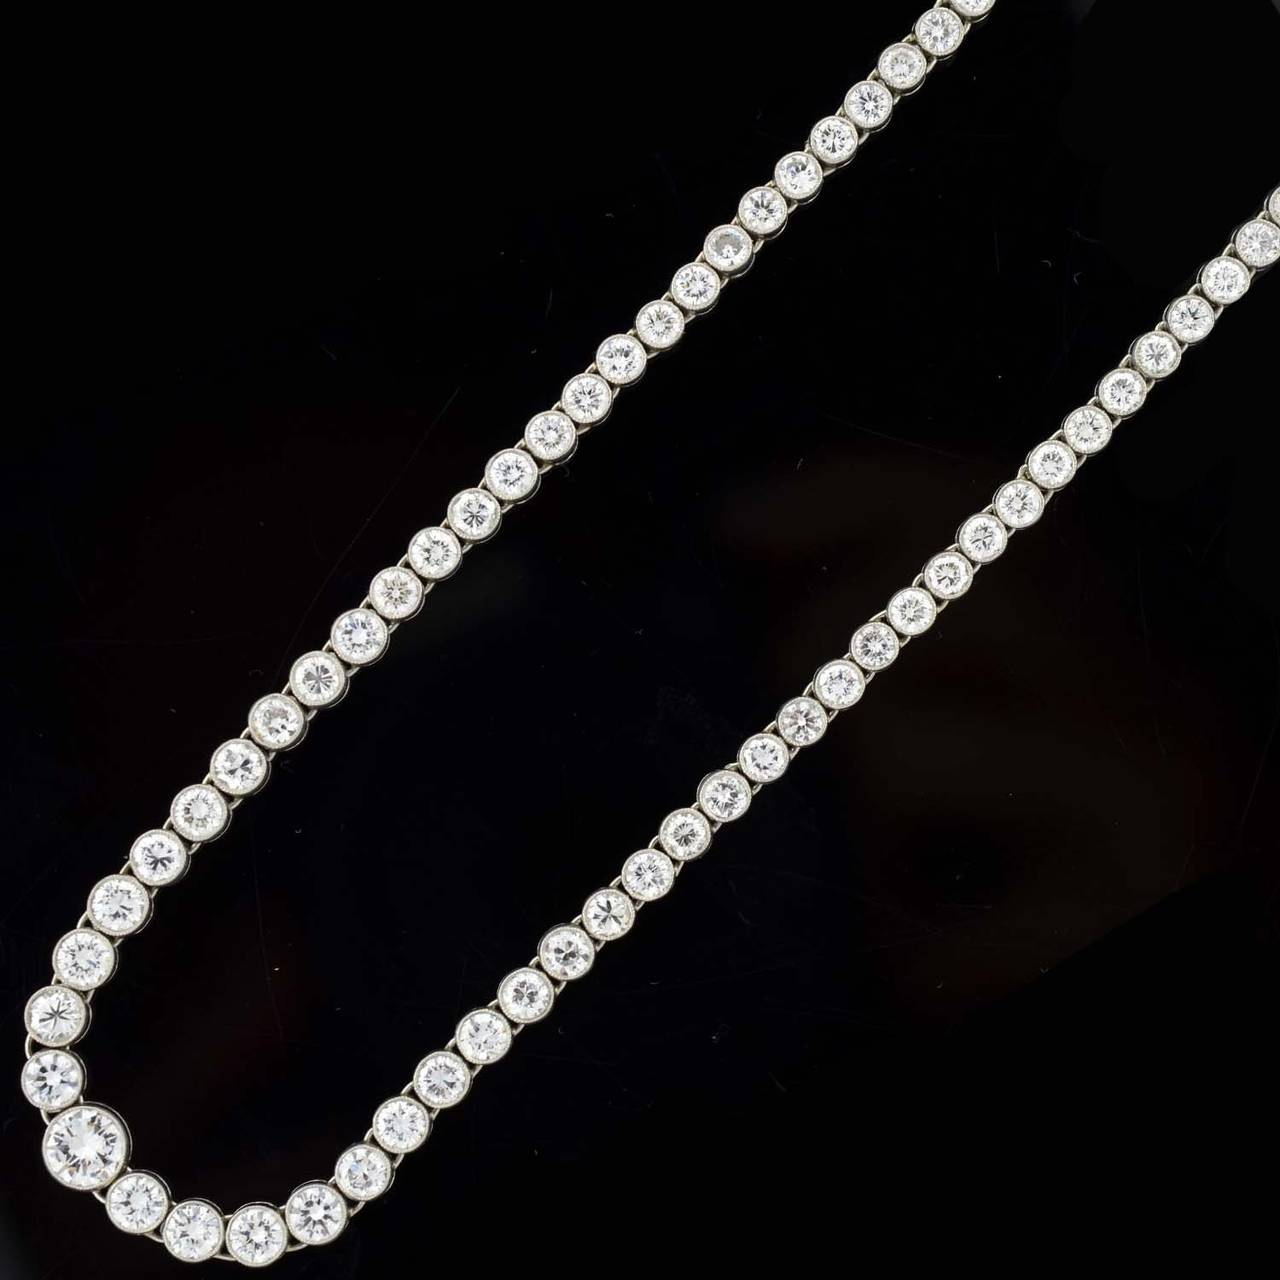 Contemporary Diamond Riviere Necklace In Excellent Condition For Sale In Narberth, PA